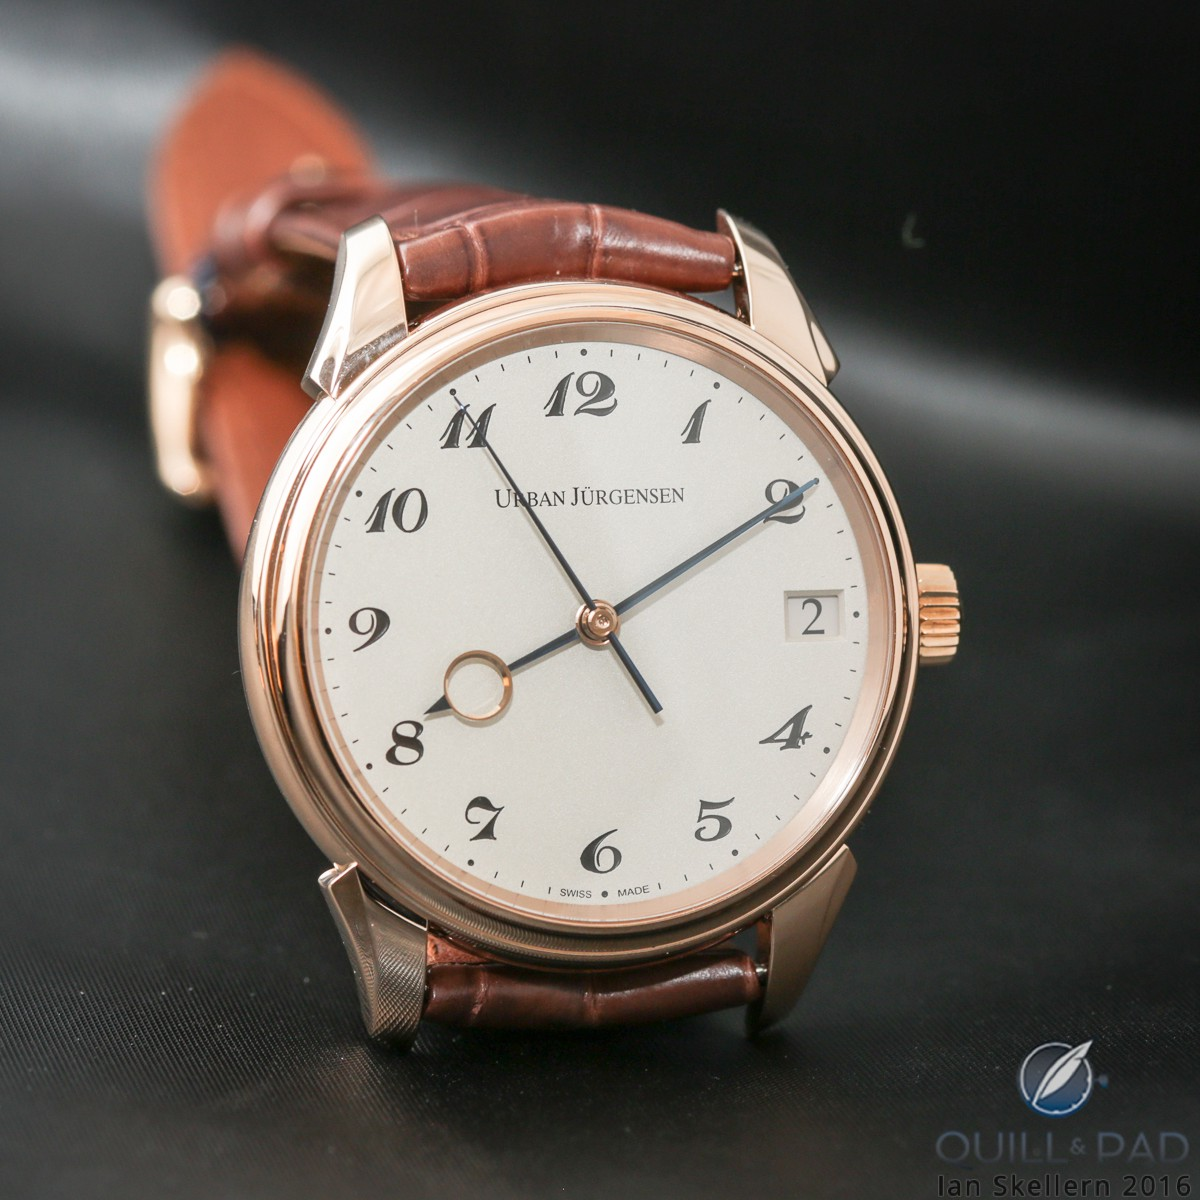 Urban Jürgensen Jules Collection Reference 2240 with grenage (frosted) dial and red gold case